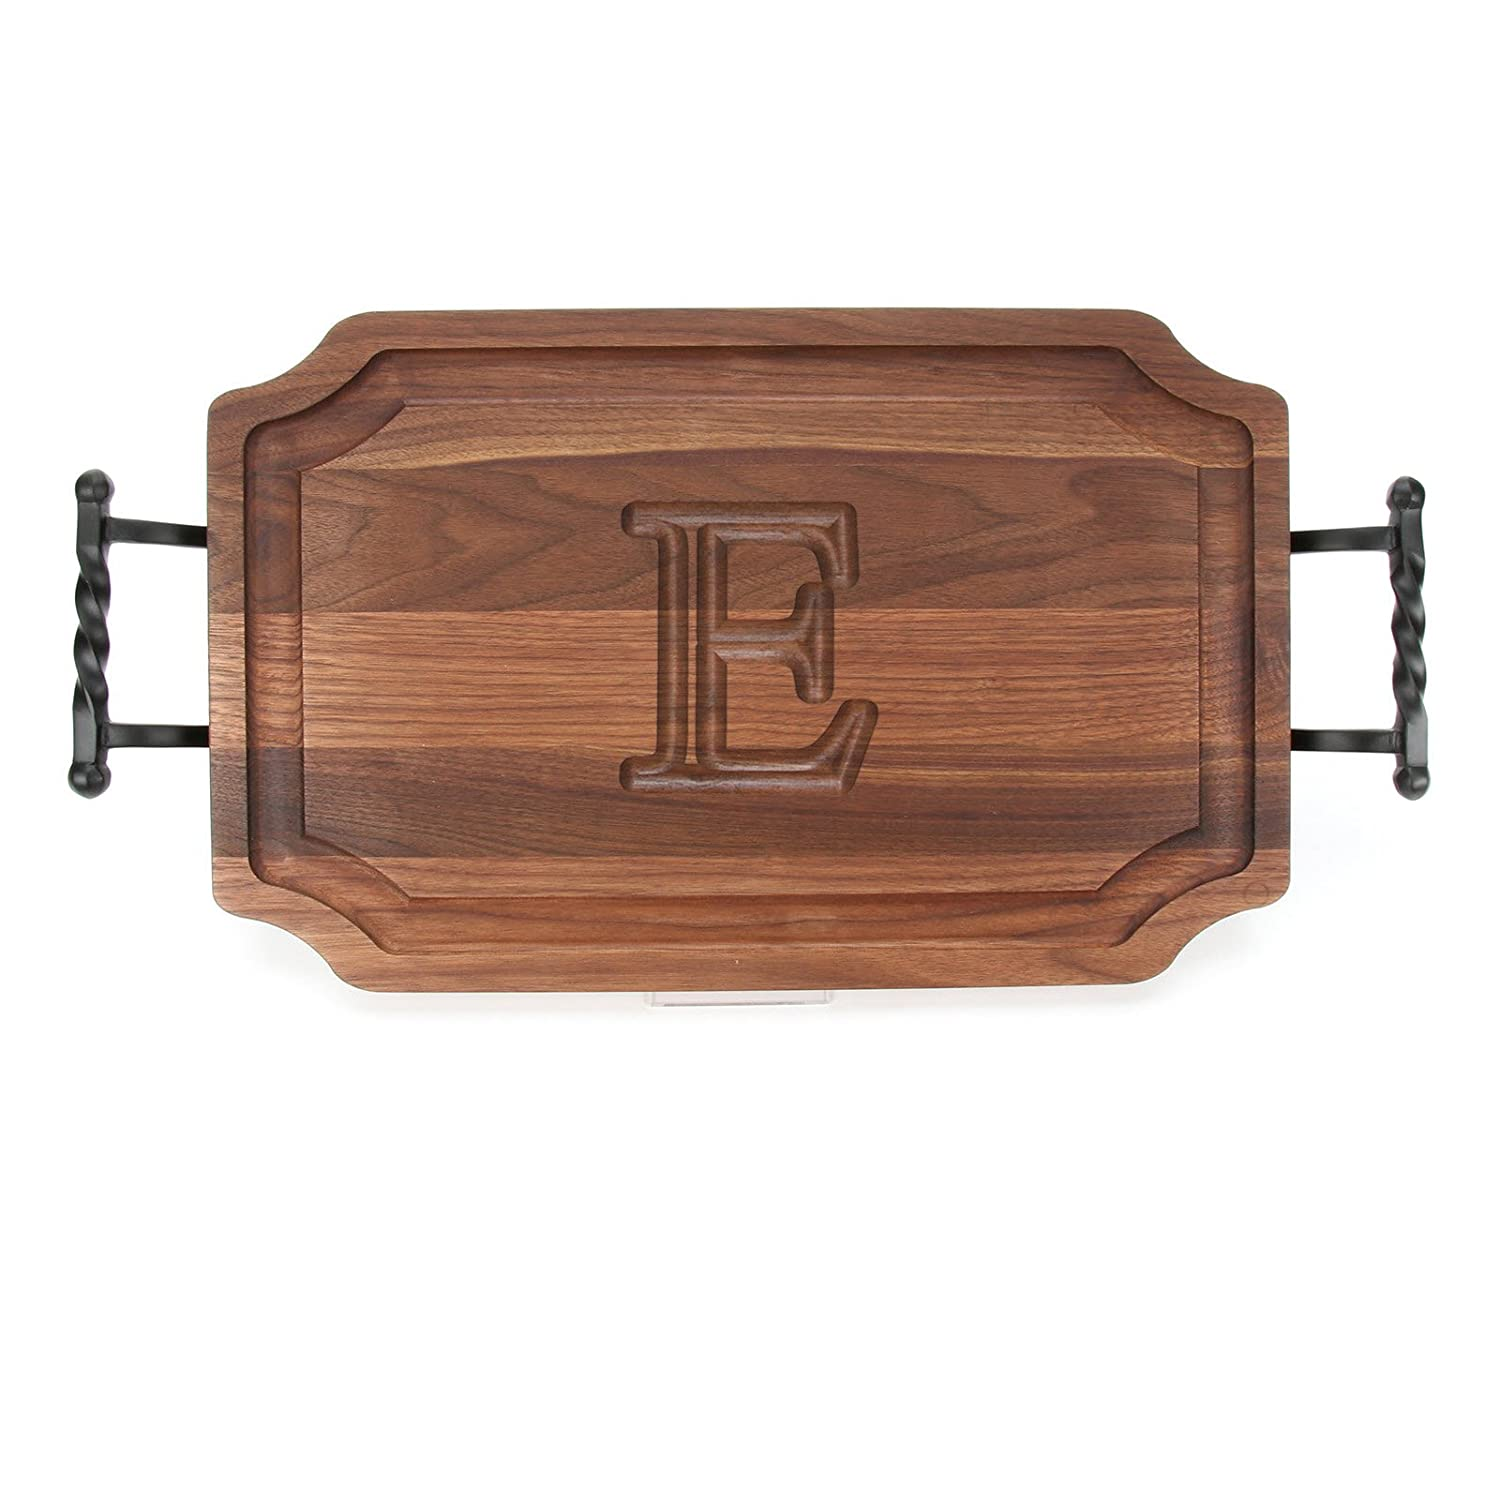 BigWood Boards W310-STWB-L Cutting Board with Twisted Ball Handle Finish with Scalloped Corners, 12-Inch by 18-Inch by 1-Inch, Monogrammed'L', Walnut